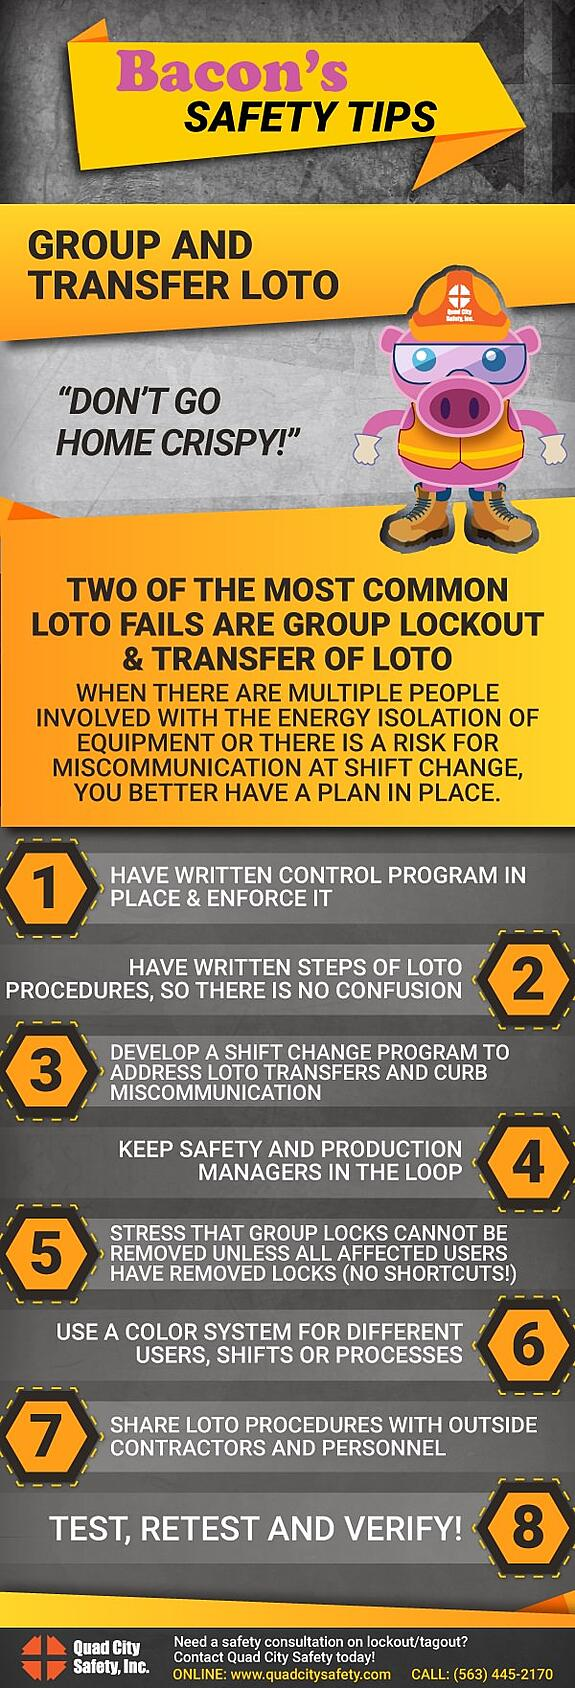 Bacon's Safety Tips Group and Transfer LOTO.